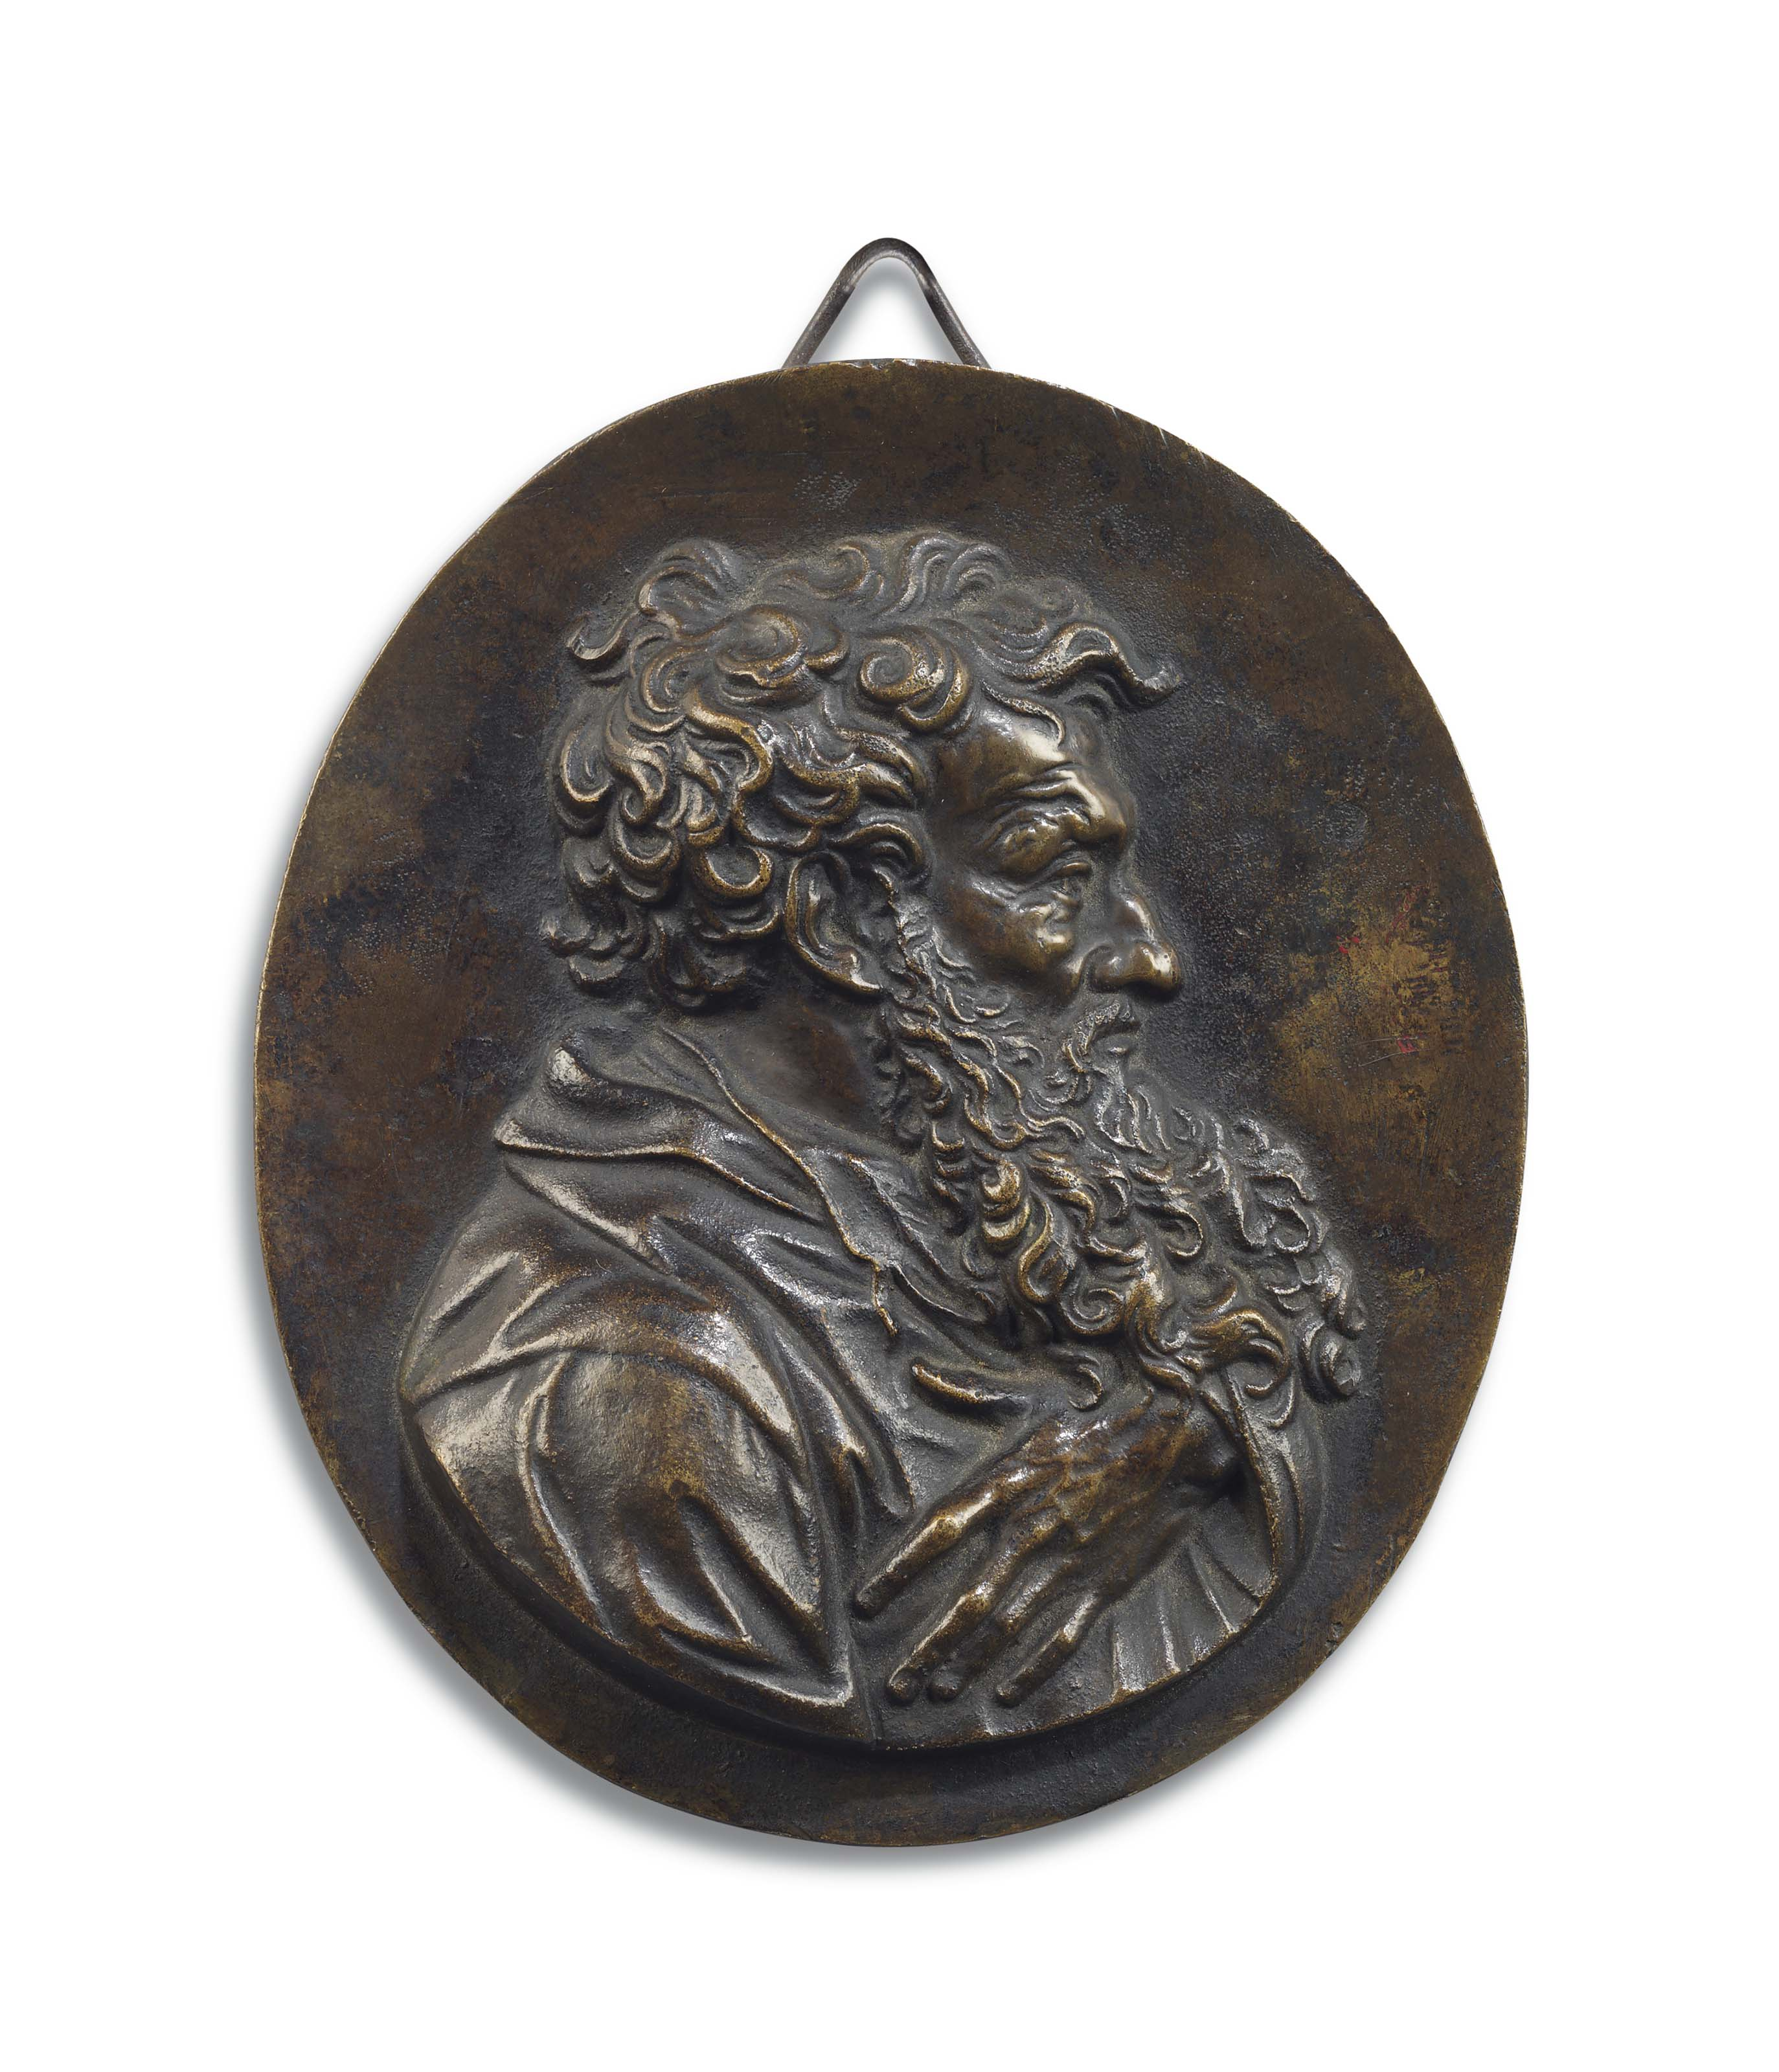 AN OVAL BRONZE RELIEF OF A GENTLEMAN, PROBABLY ST PAUL